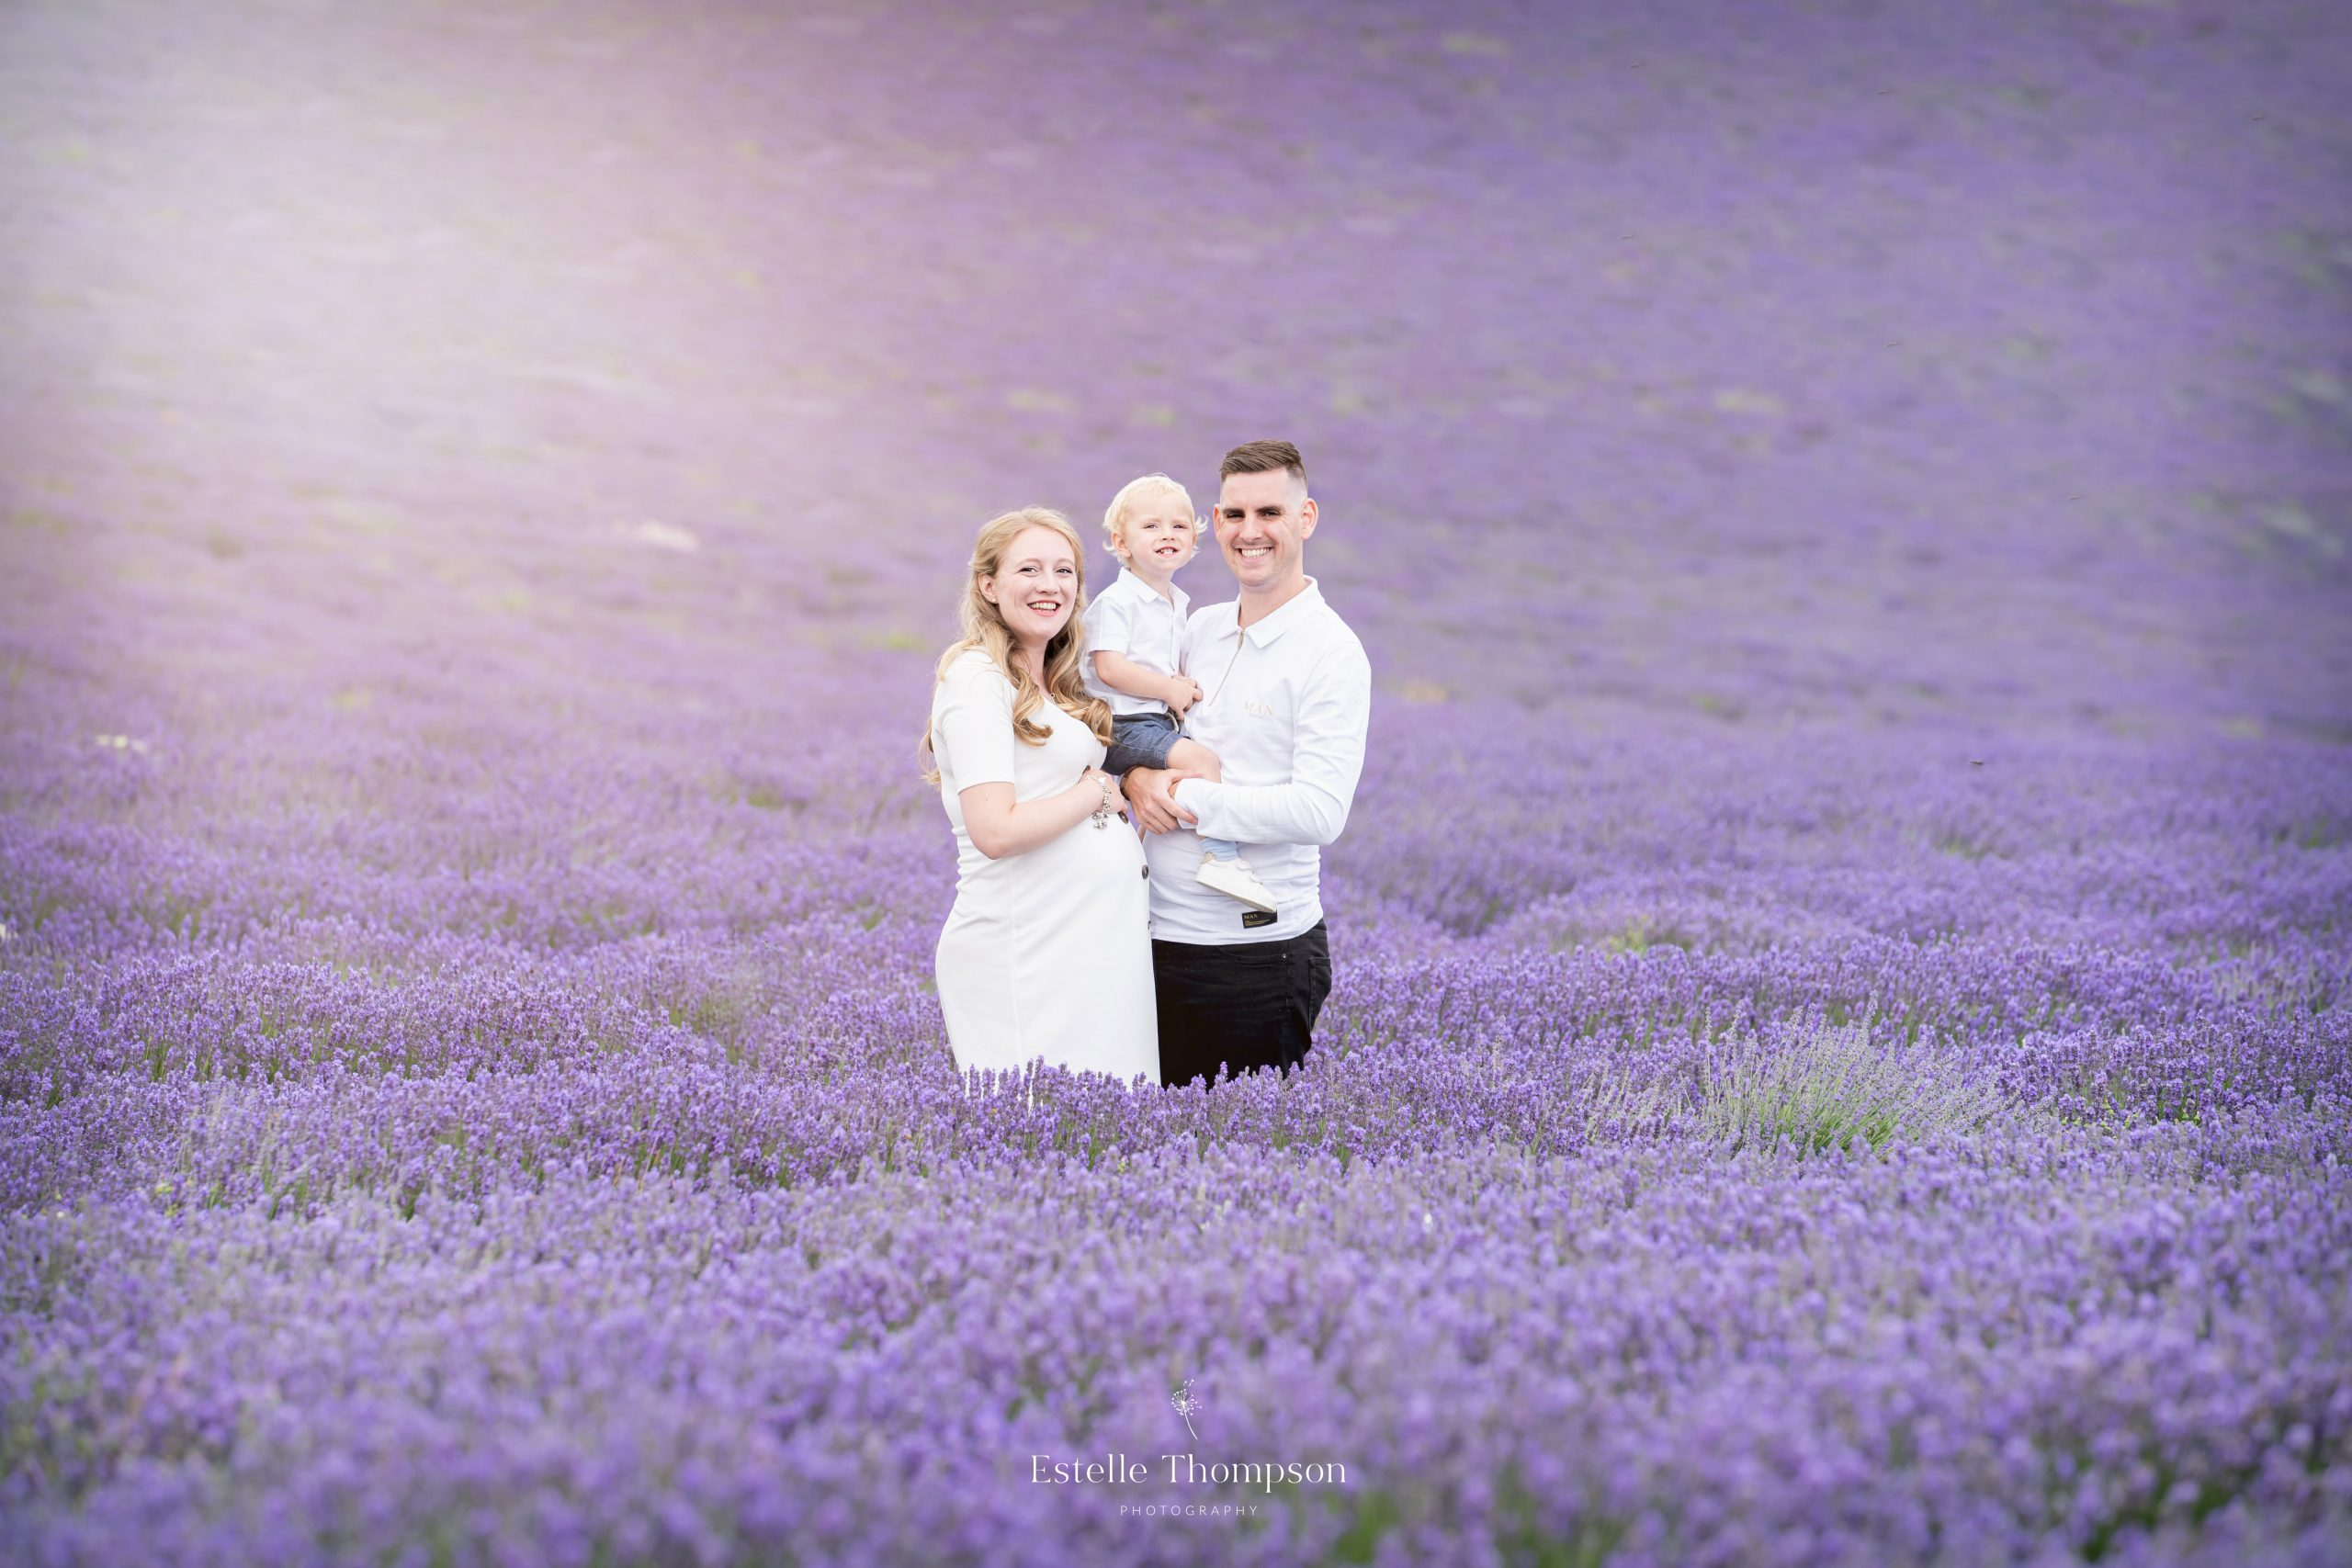 A pregnant mum and her husband holding their son son stand in a lavender field in Sevenoaks Kent for a family photo